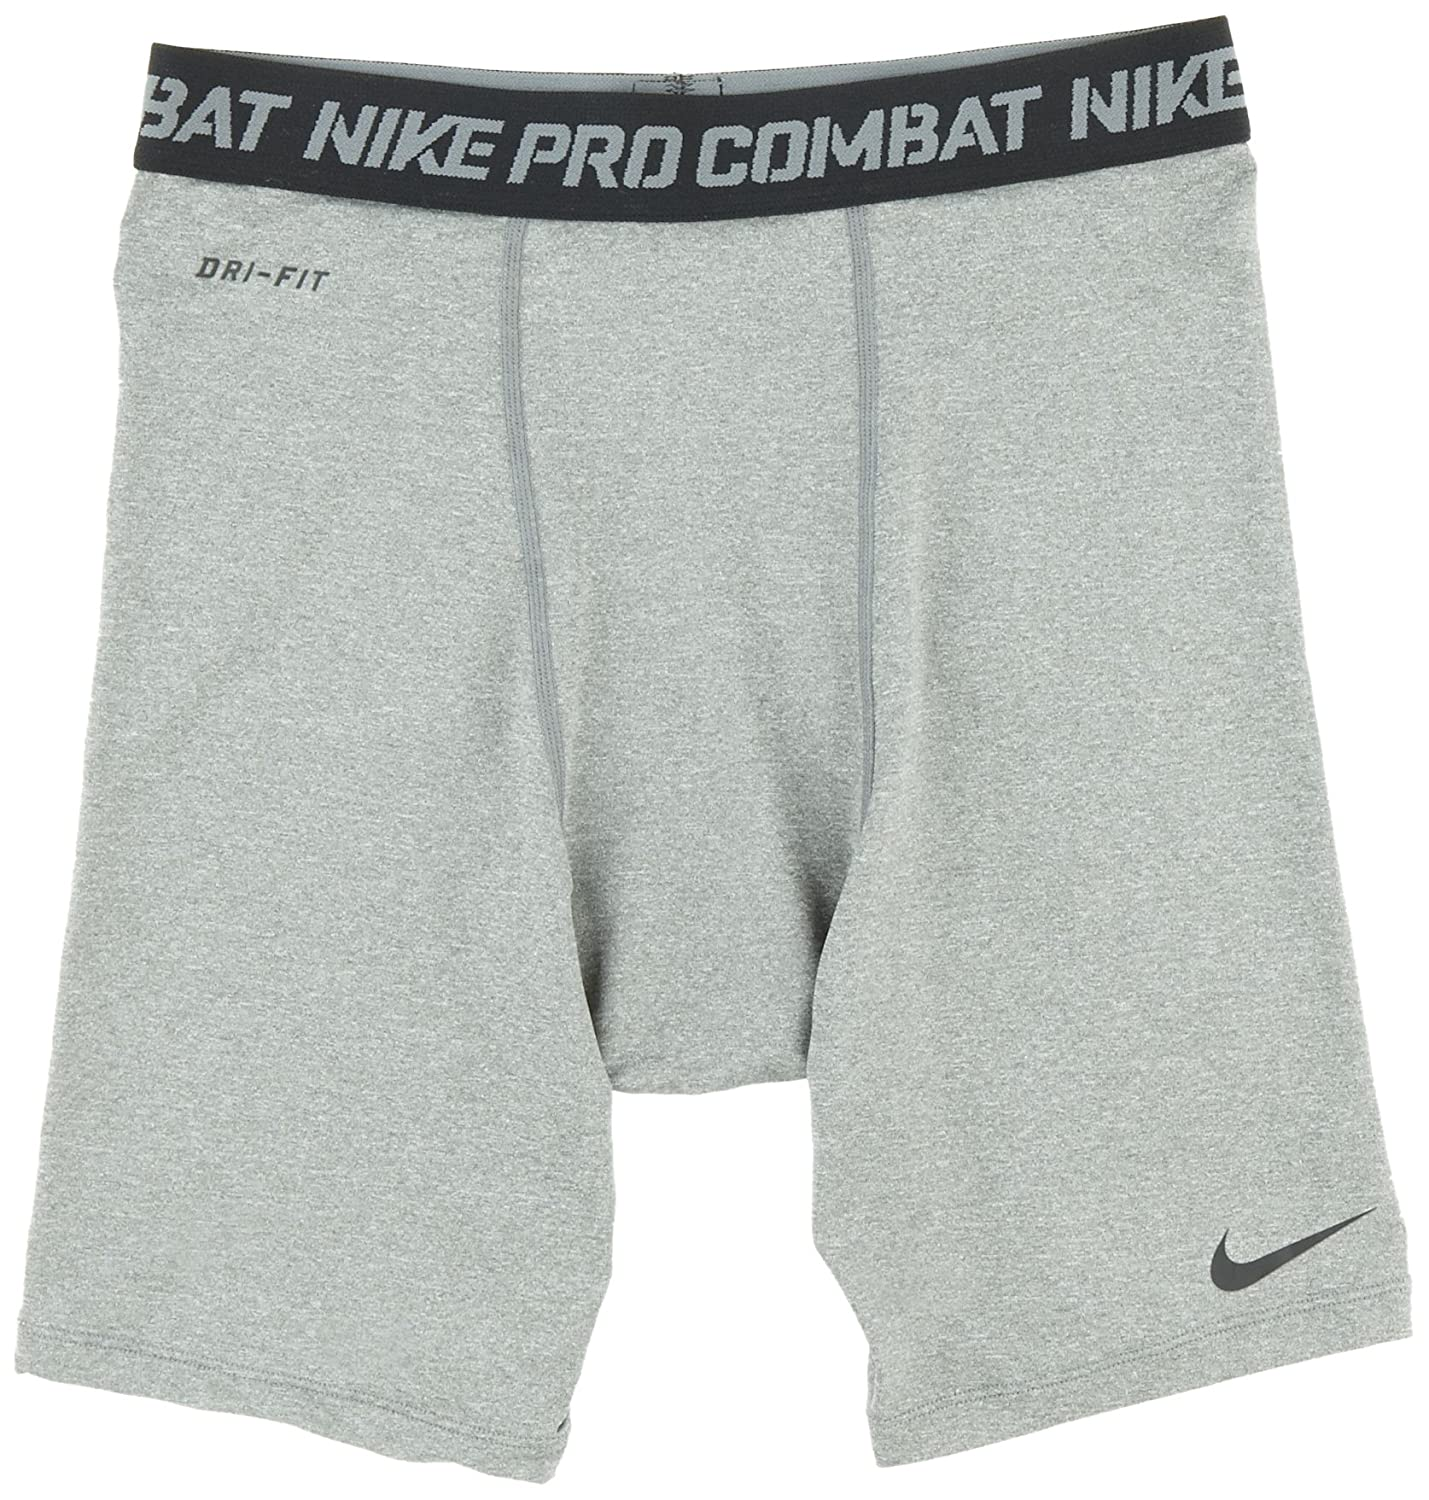 Amazon.com: Nike Pro Core 6 Inch Compression Short Tights: Sports & Outdoors